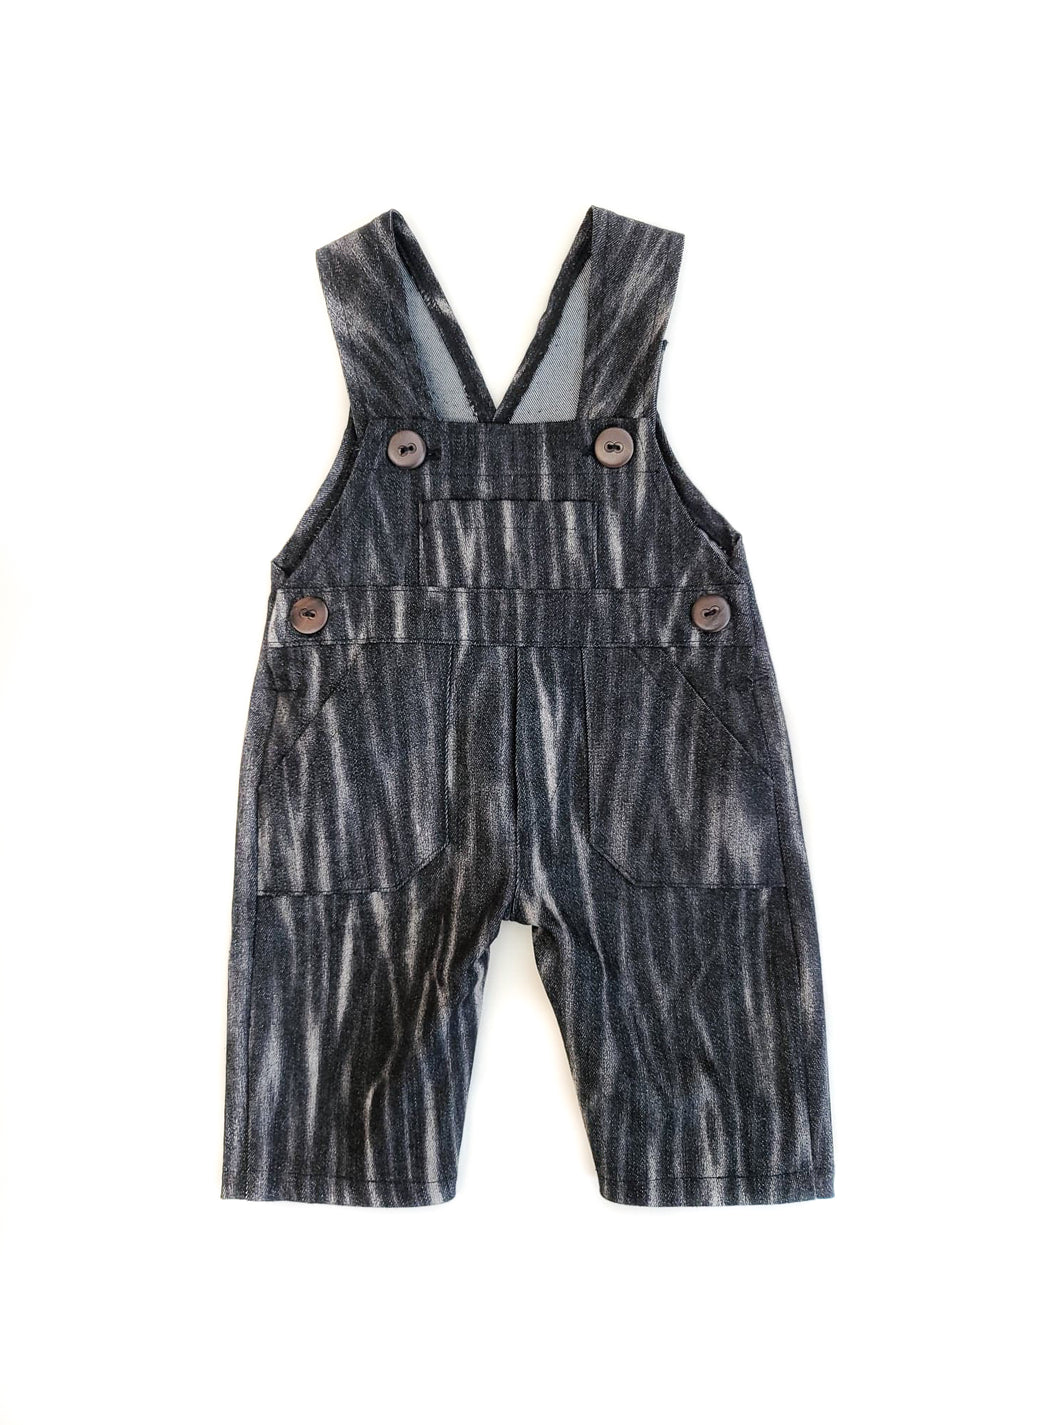 Distressed Black Coveralls